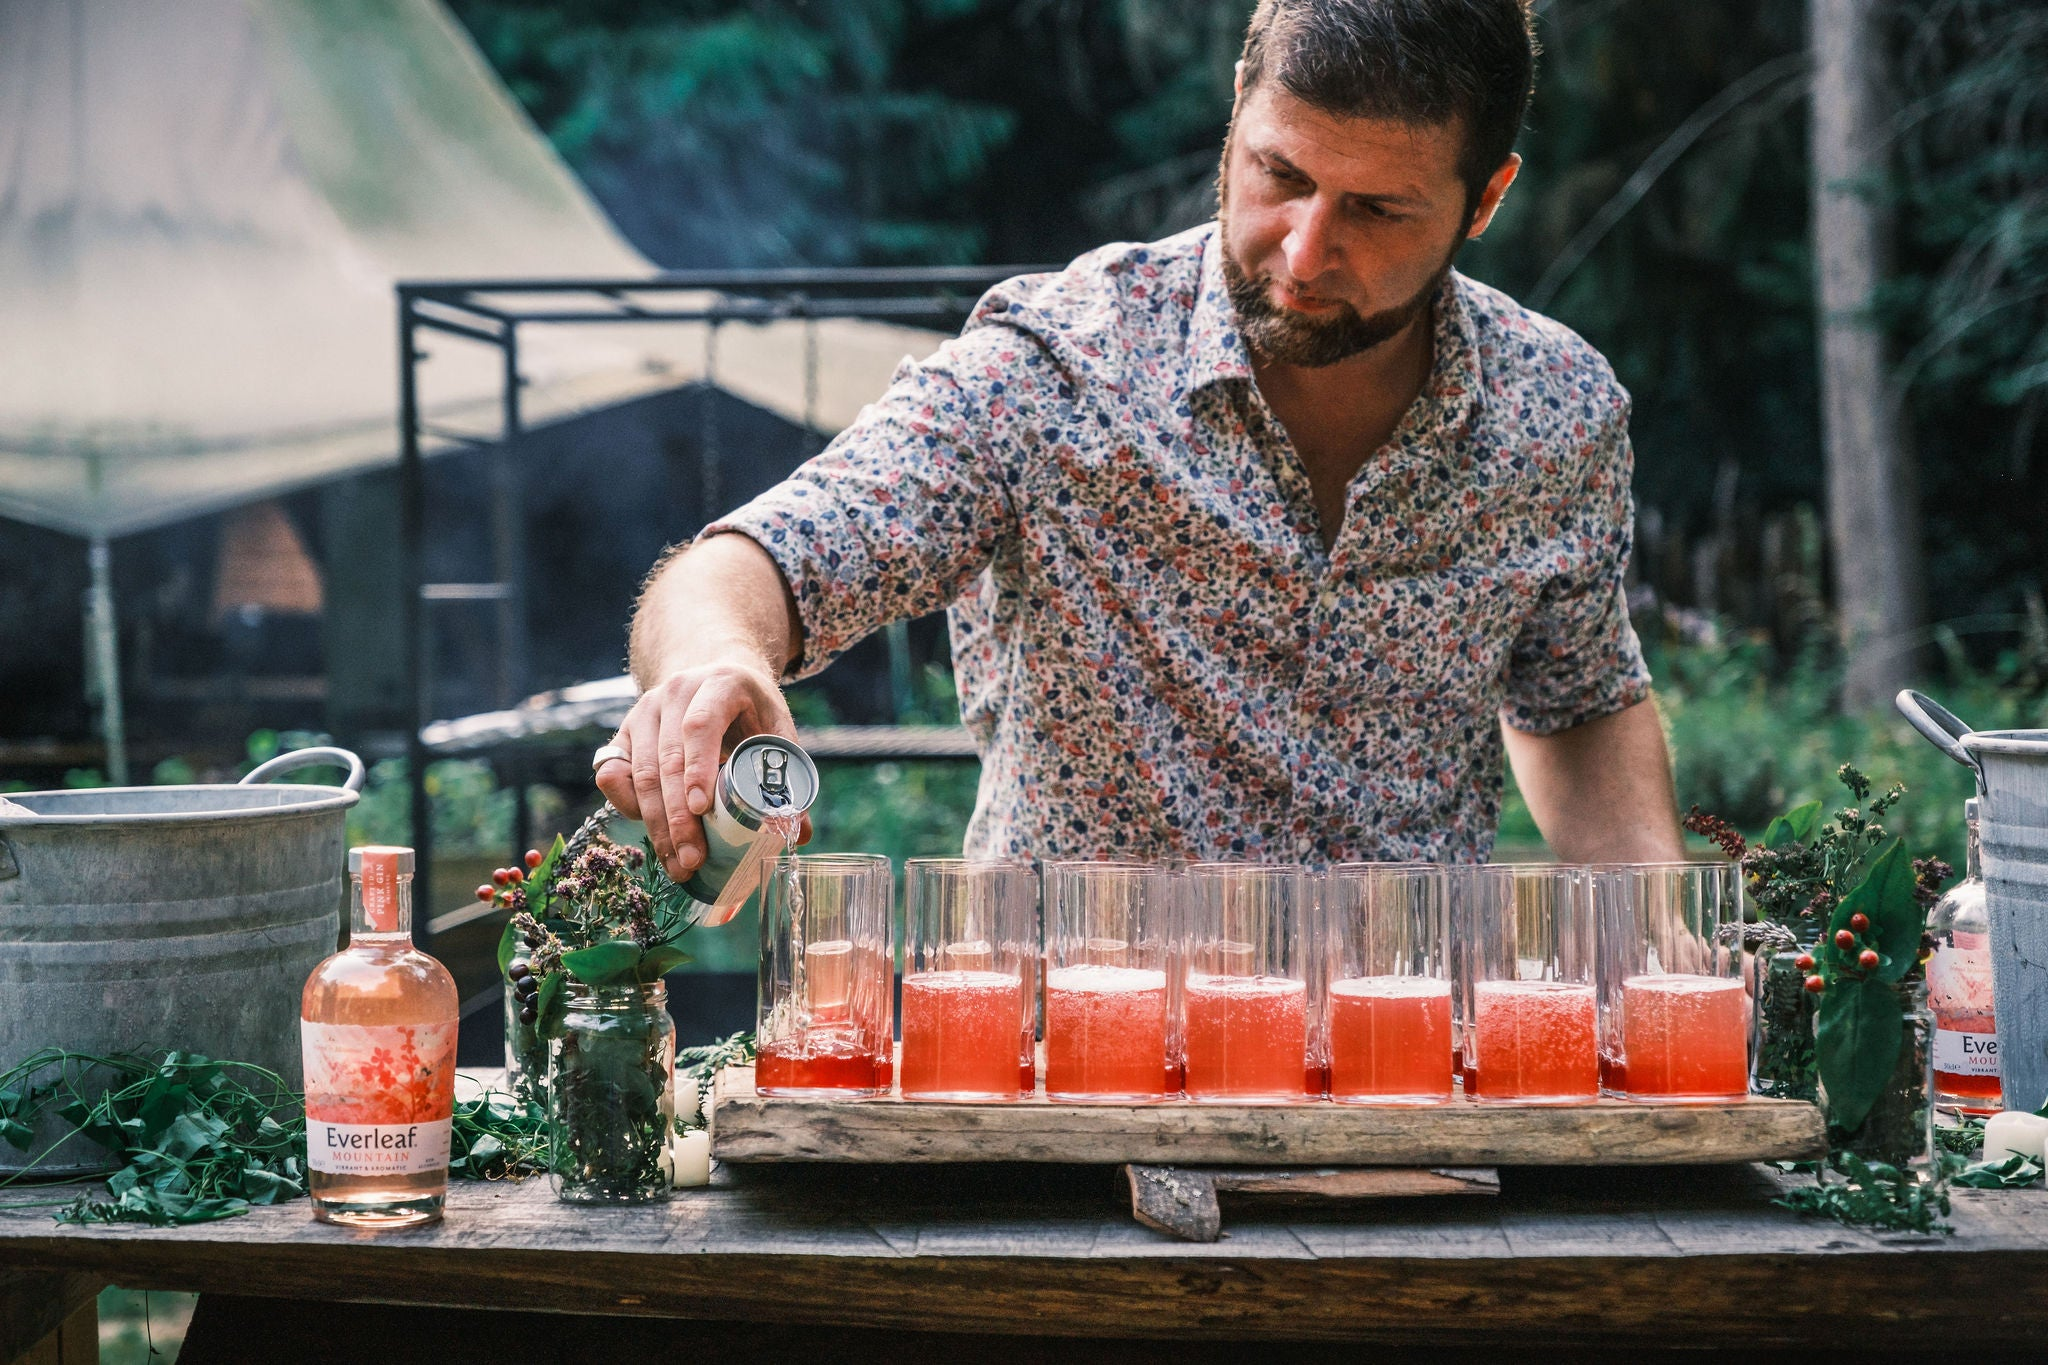 Paolo Tonellotto, making our Everleaf cocktails